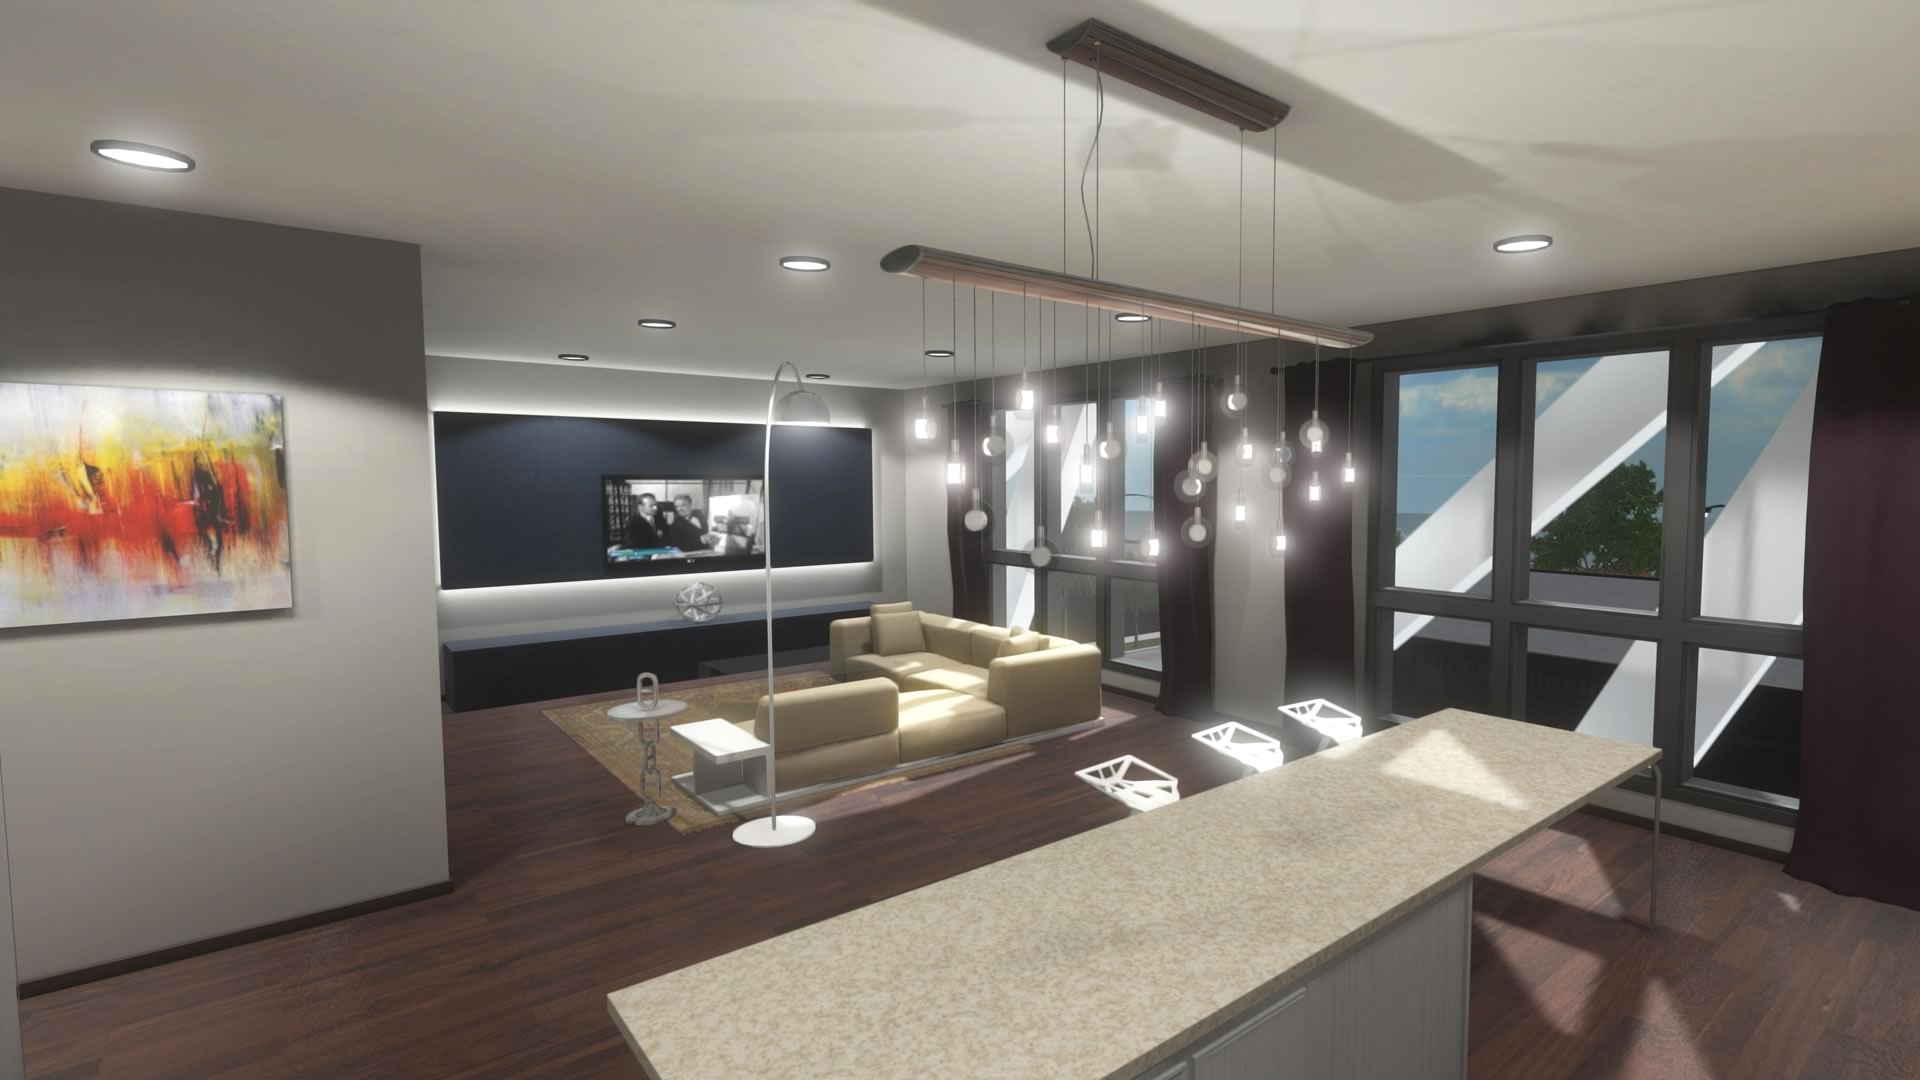 707 western real estate pre sales w the oculus rift dk2 for Virtual interior design